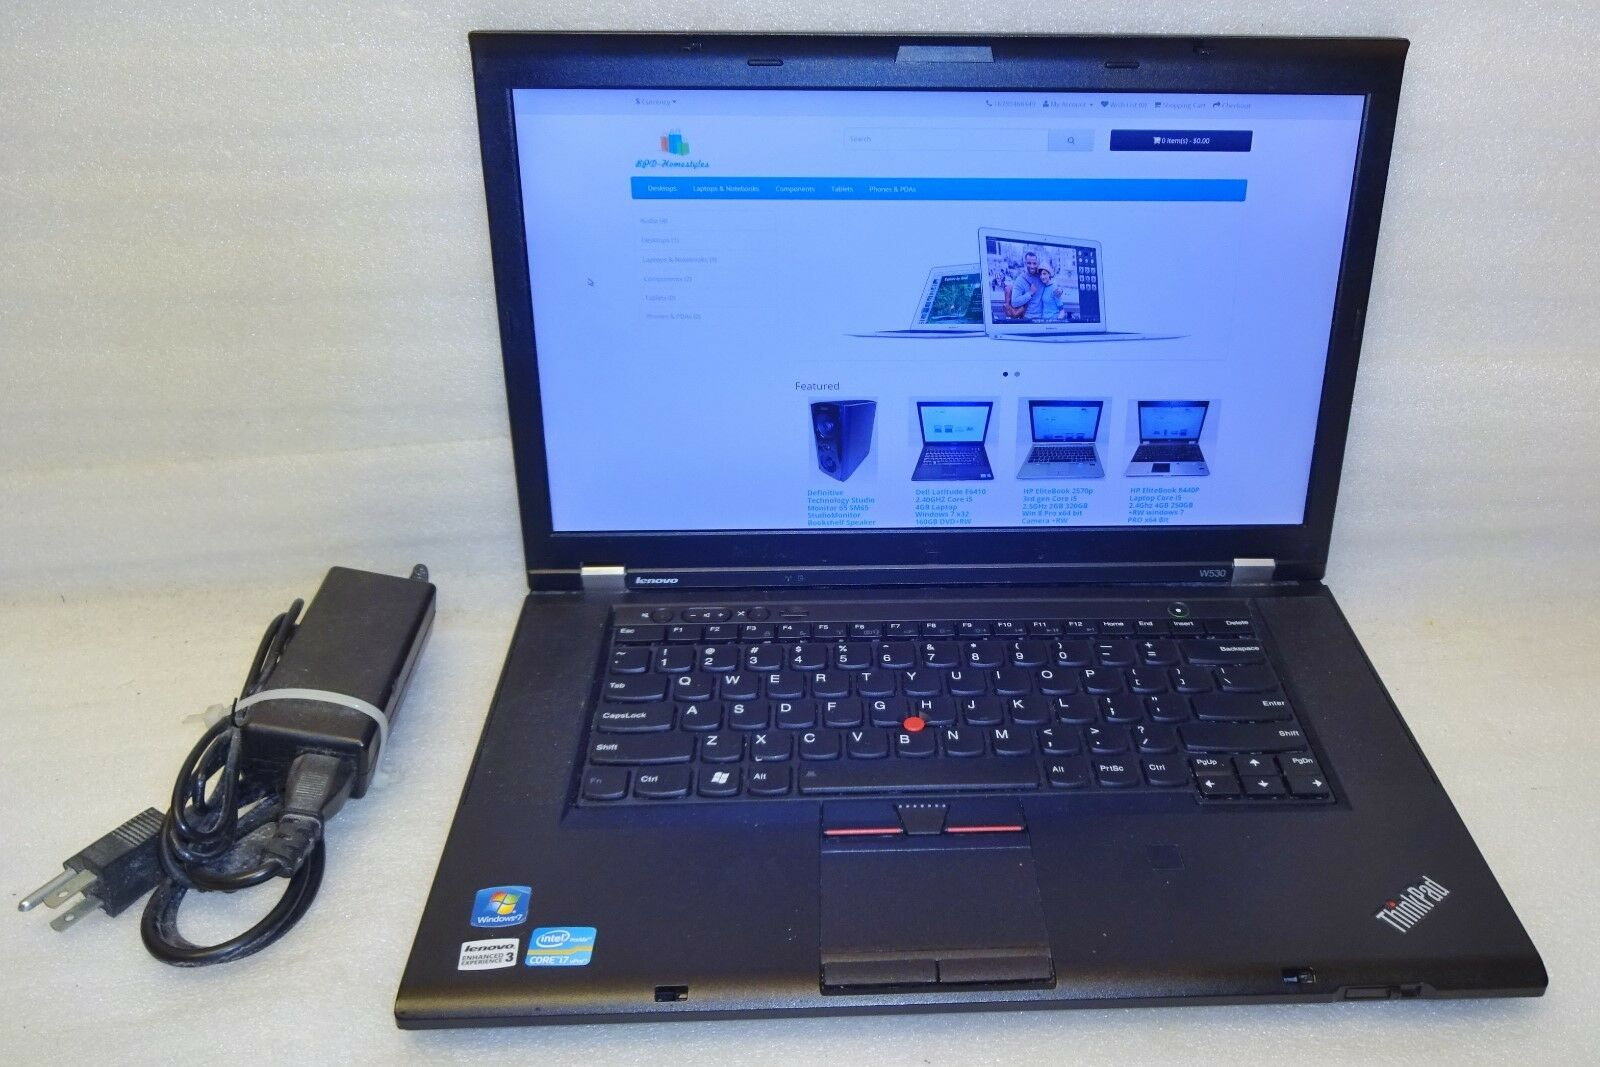 Lenovo Thinkpad W530 Laptop Quad Core i7 2.70GHZ 8GB 180GB SSD windows 7 Pro